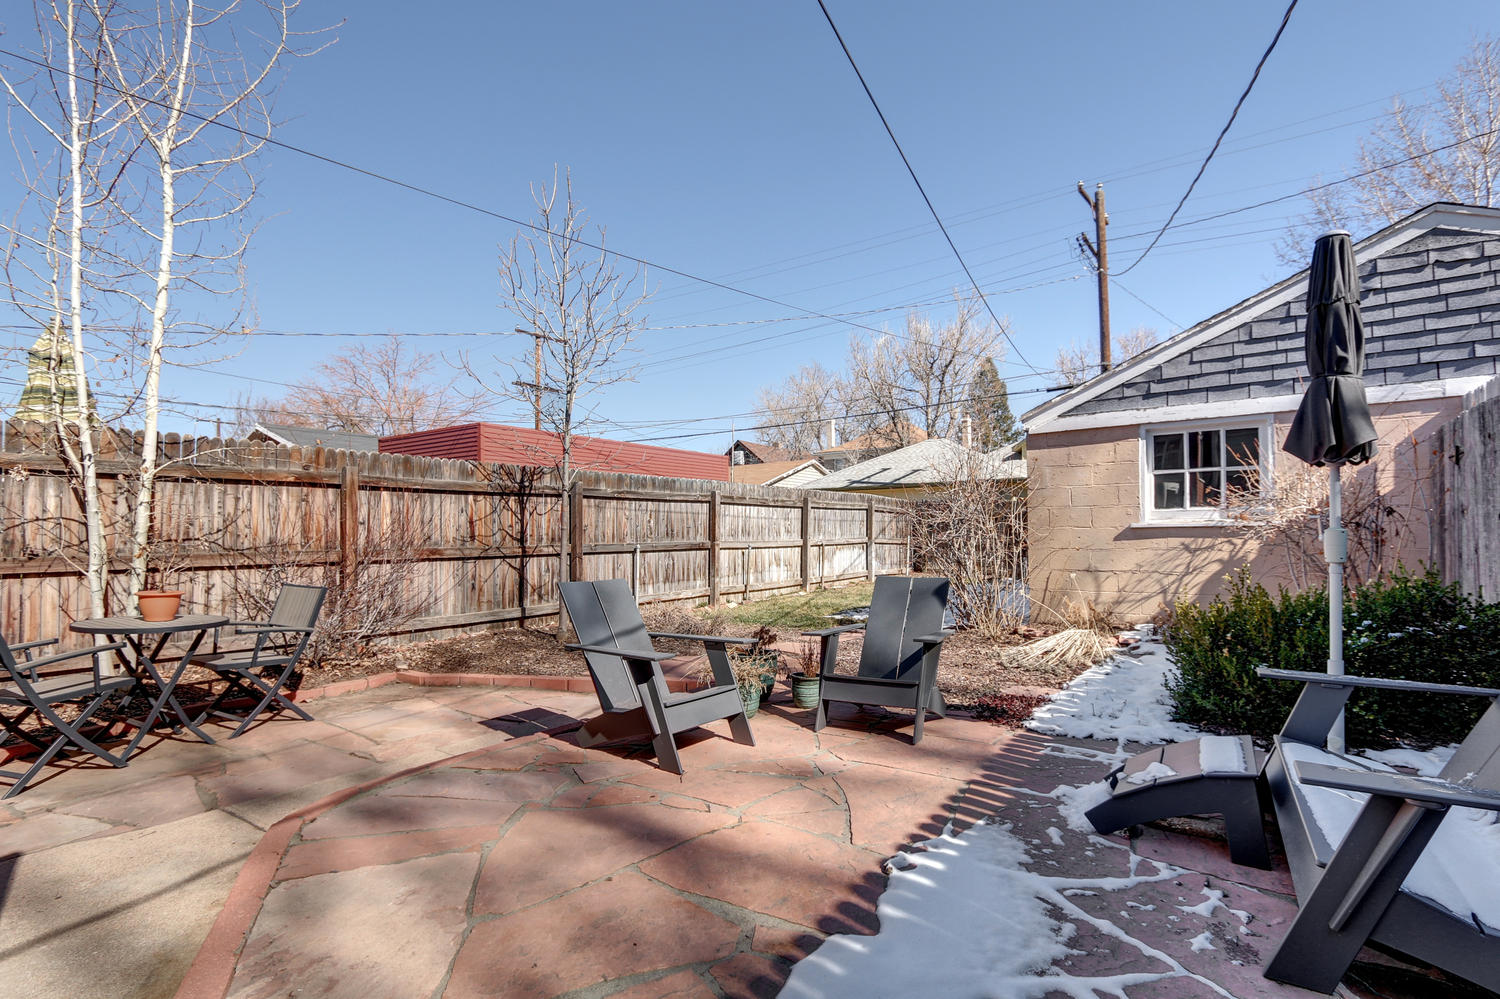 30-528-marion-st-denver-co-80218-large-030-31-hotshotpros-830e-1500x1000-72dpi